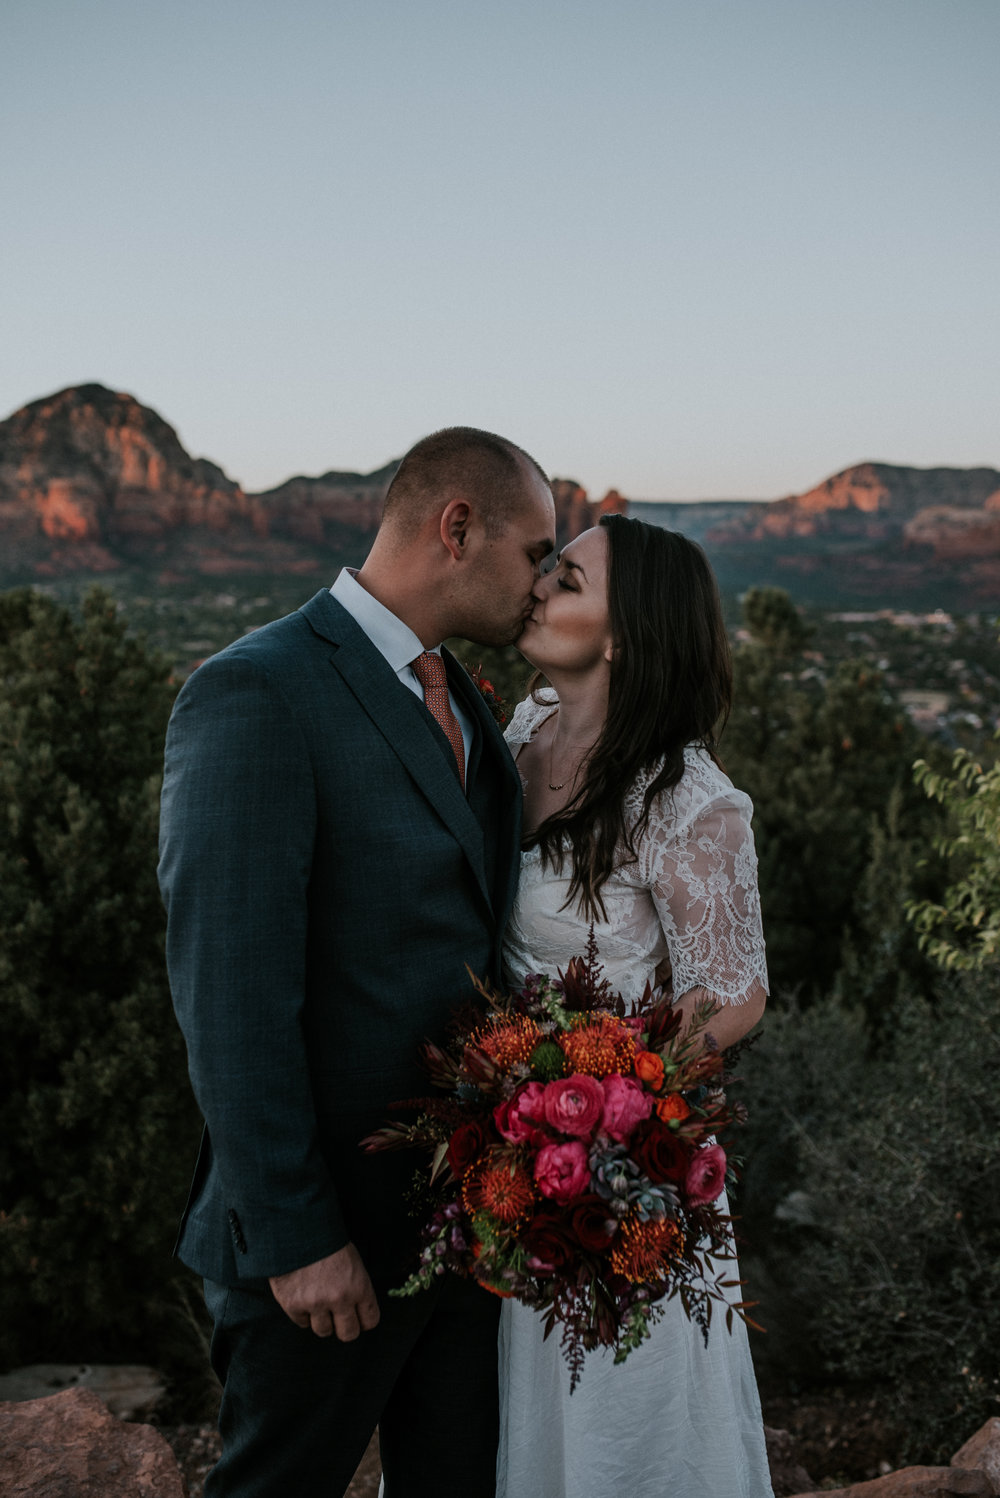 Intimate Adventure Fall Sedona Wedding-7.jpg